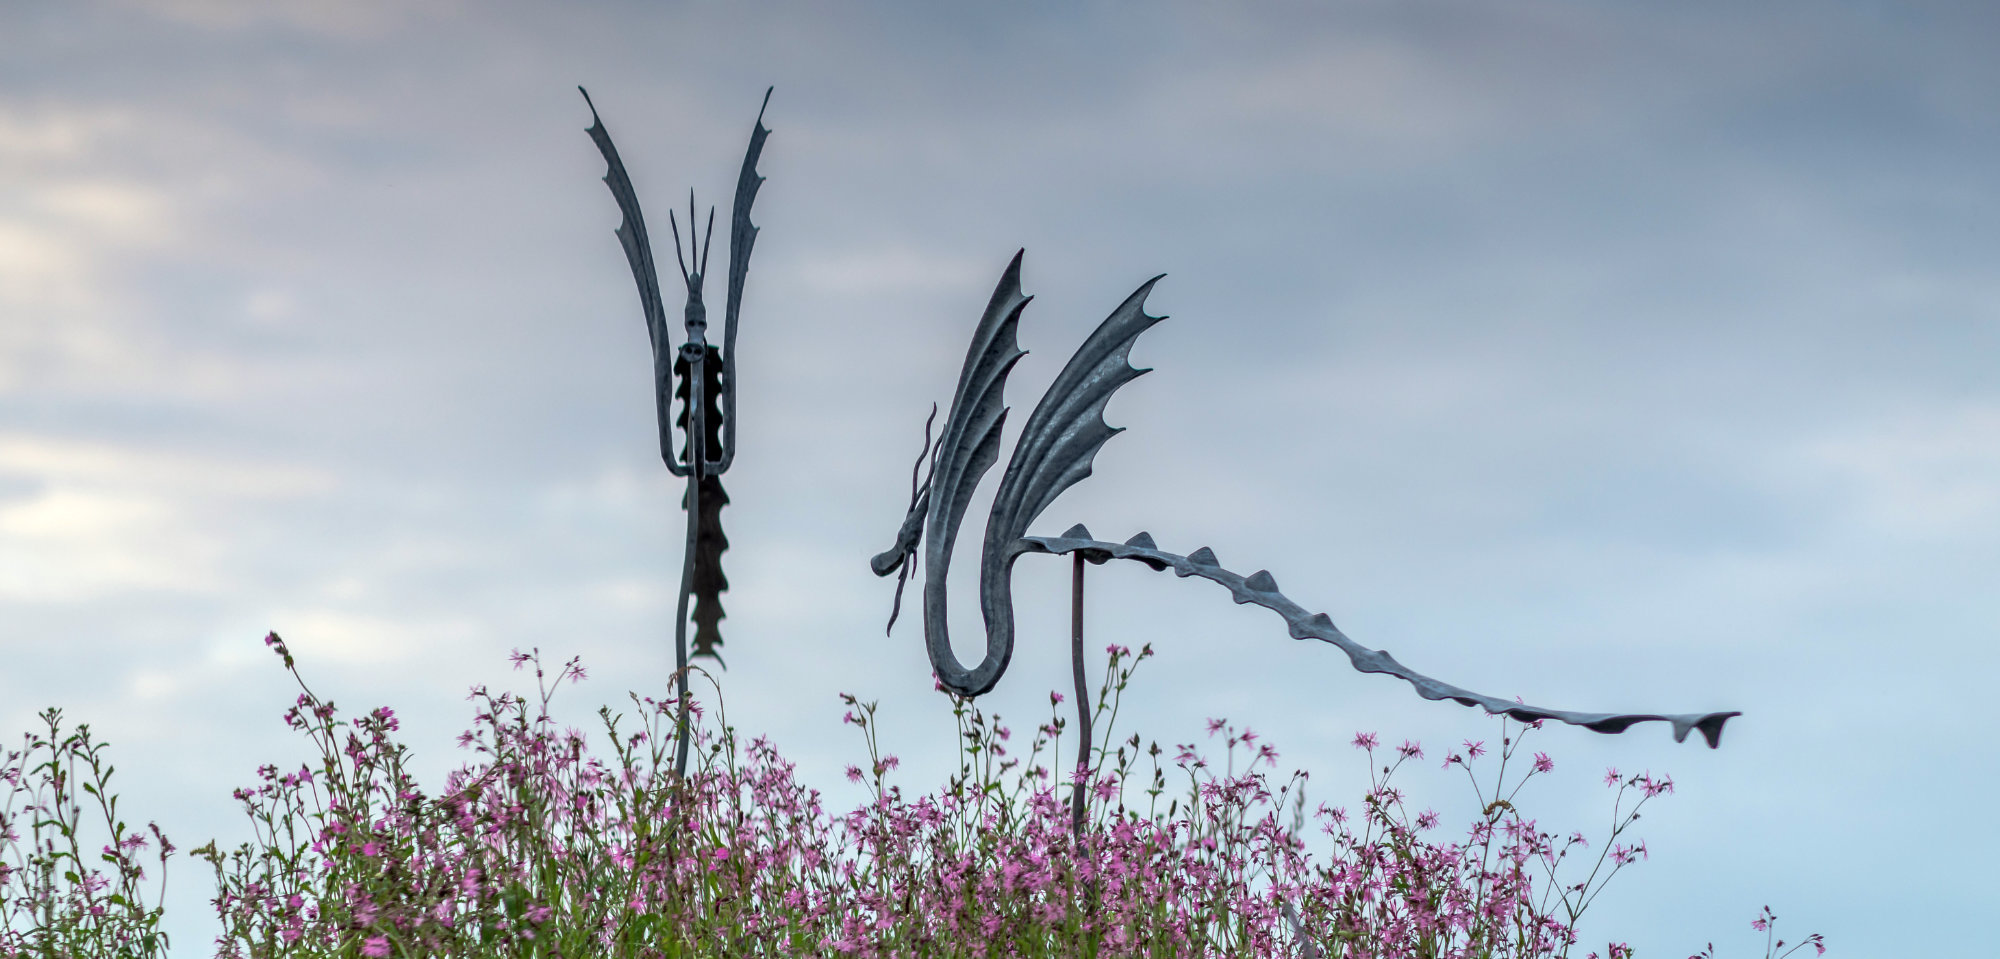 Wind Dragons by Ian Gill Sculpture at Chelsea Flower Show